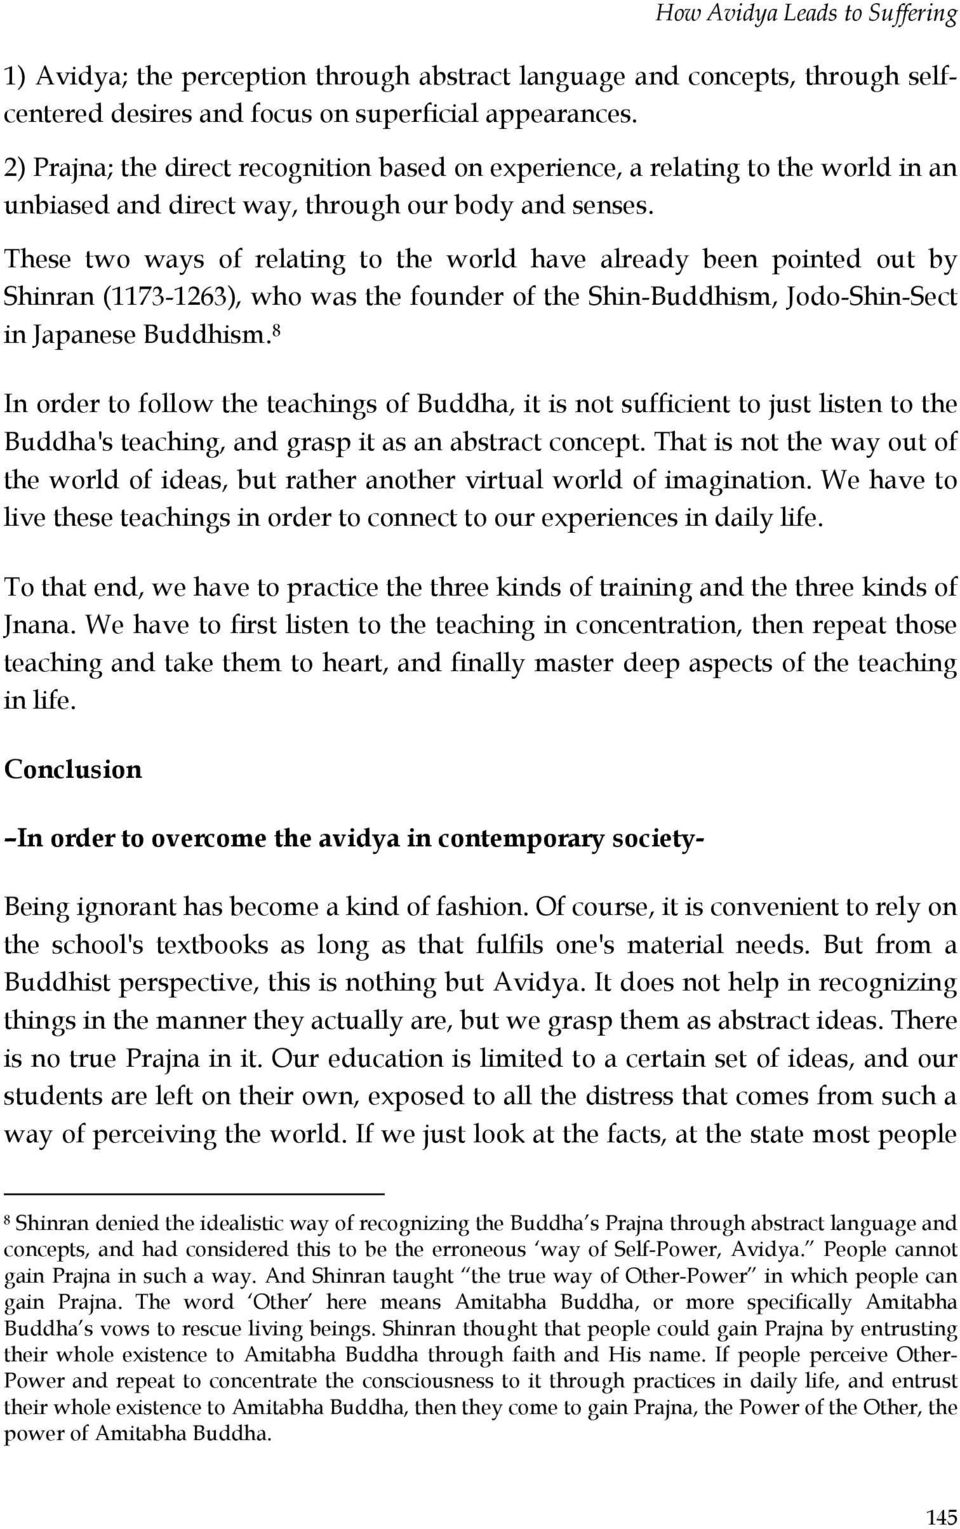 These two ways of relating to the world have already been pointed out by Shinran (1173-1263), who was the founder of the Shin-Buddhism, Jodo-Shin-Sect in Japanese Buddhism.